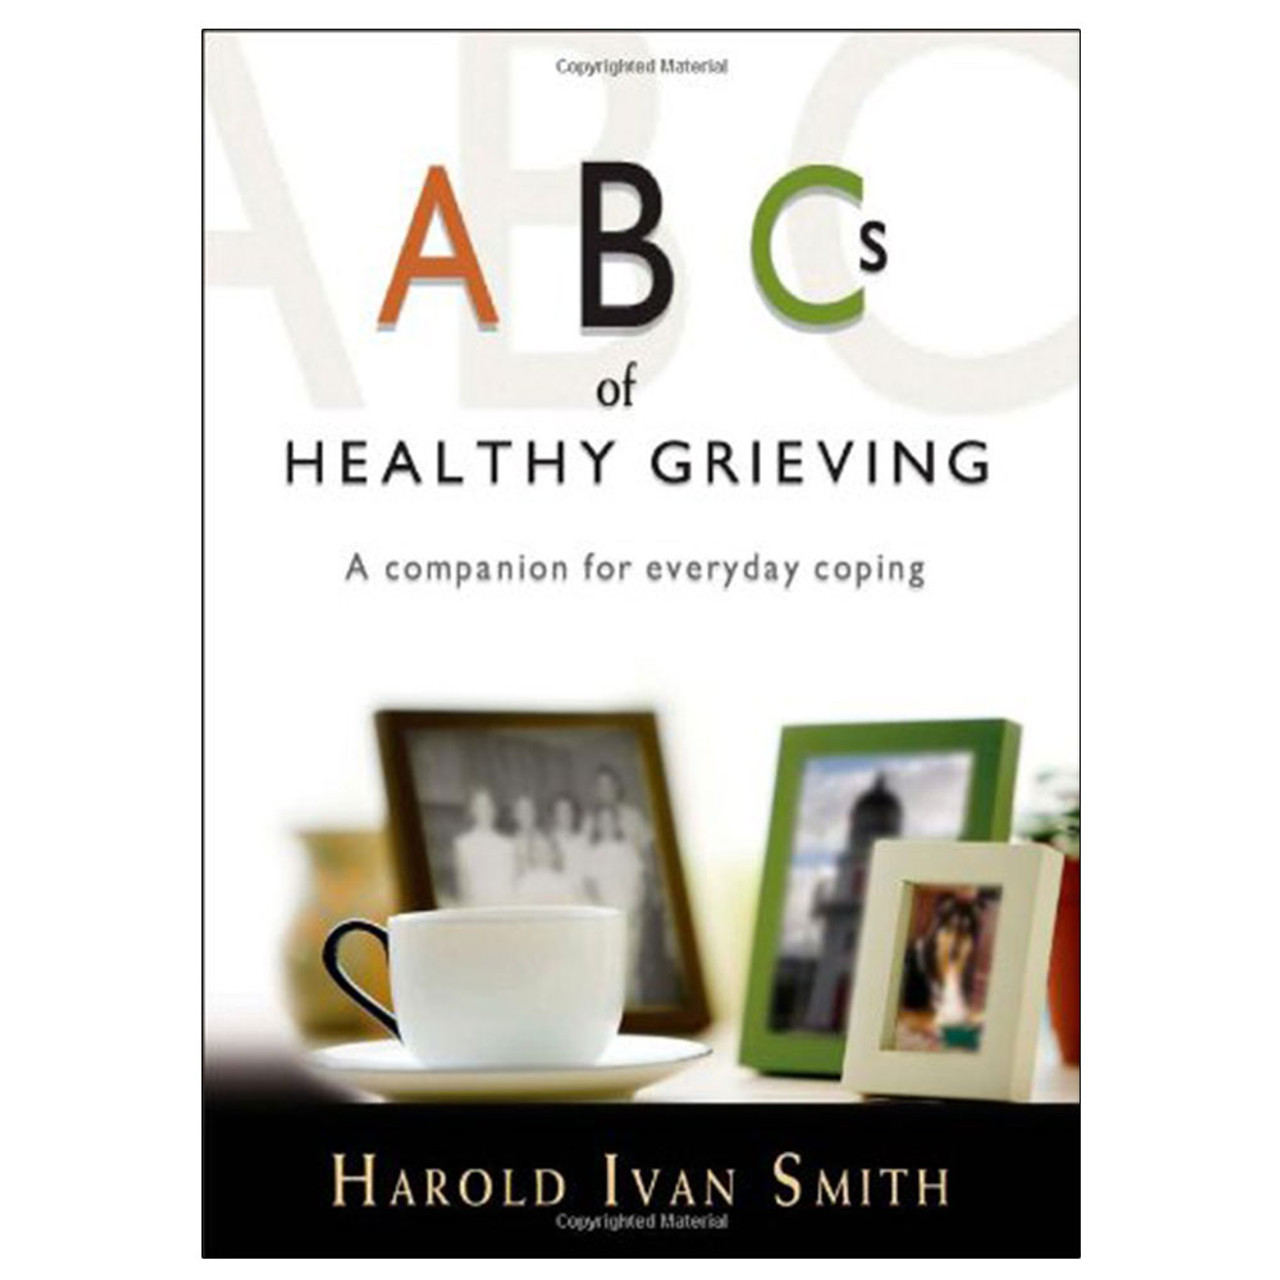 ABC's of Healthy Grieving  Smith, Harold Ivan